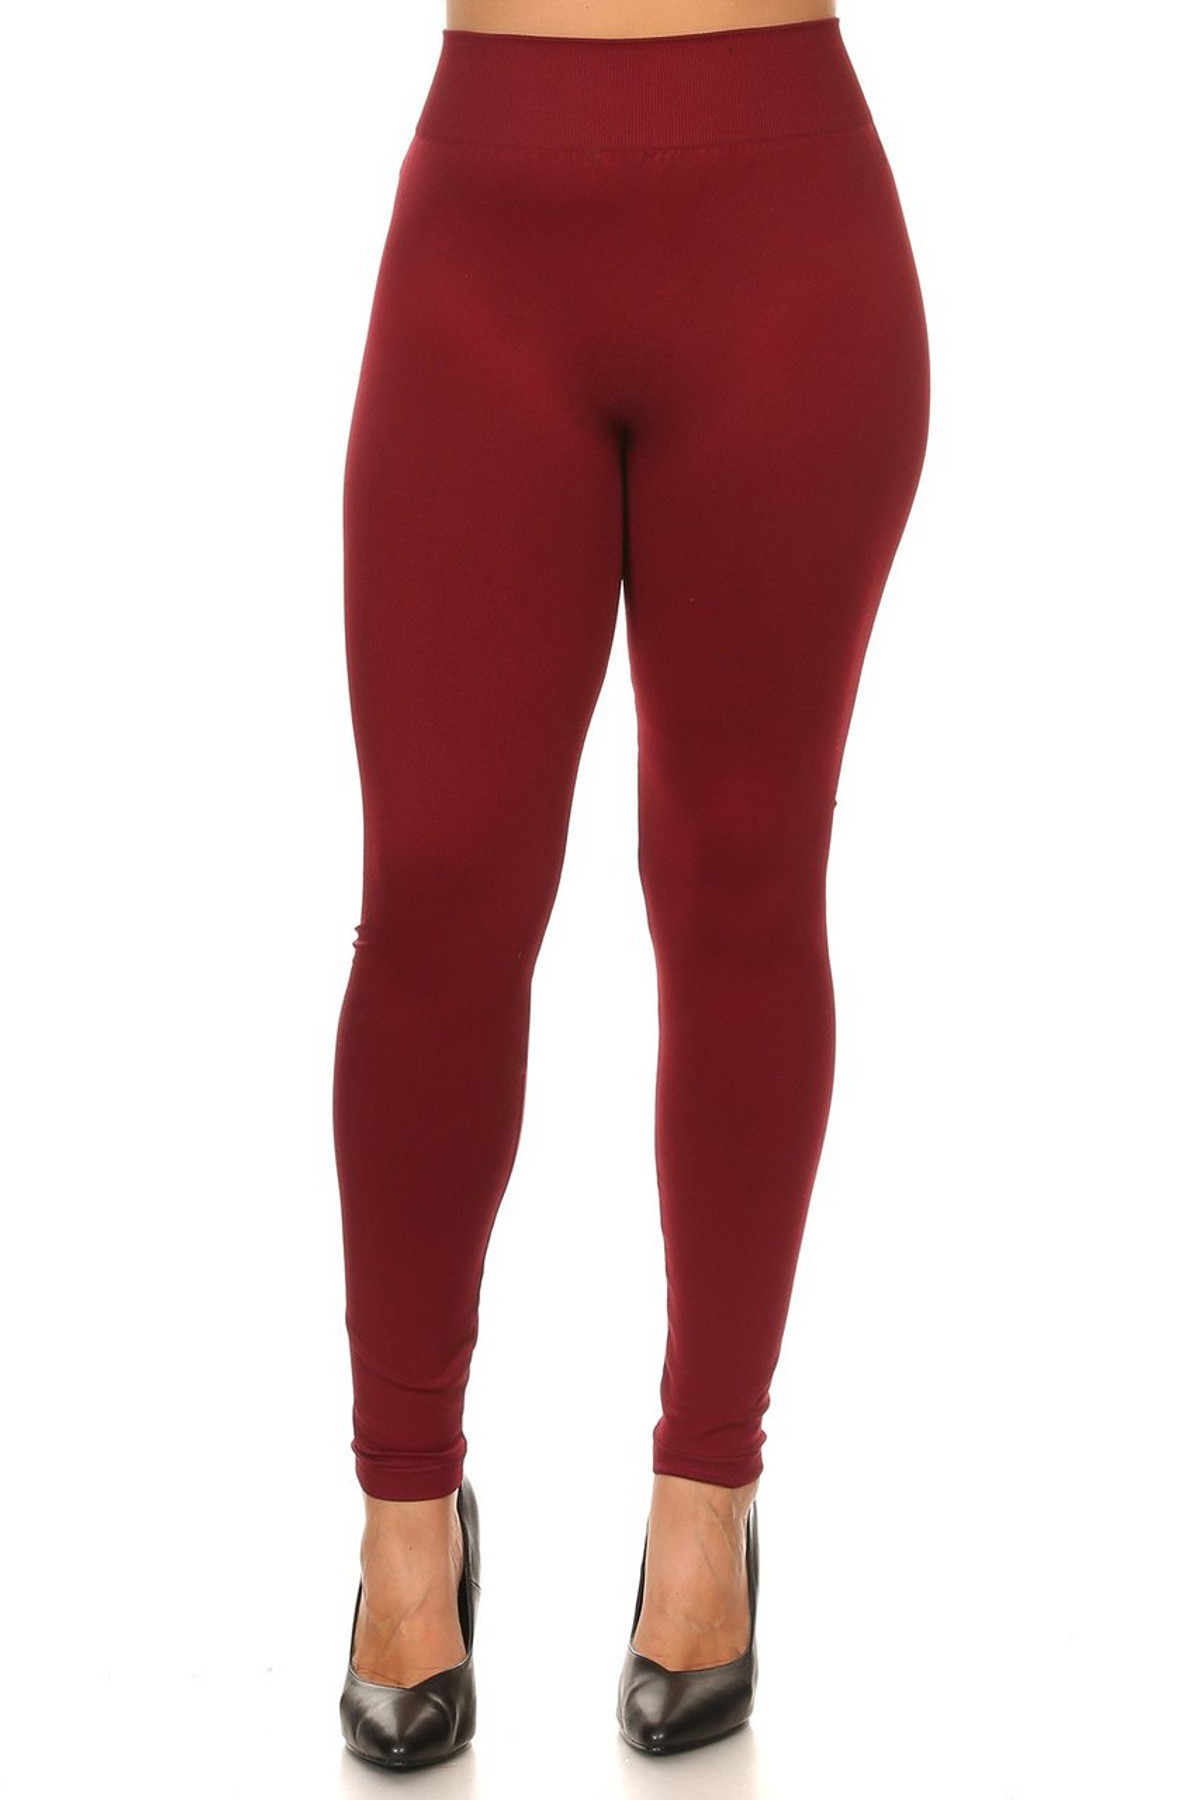 34d63f9bb504c Front side image of Wholesale Extra Thick Basic Seamless Plus Size Leggings